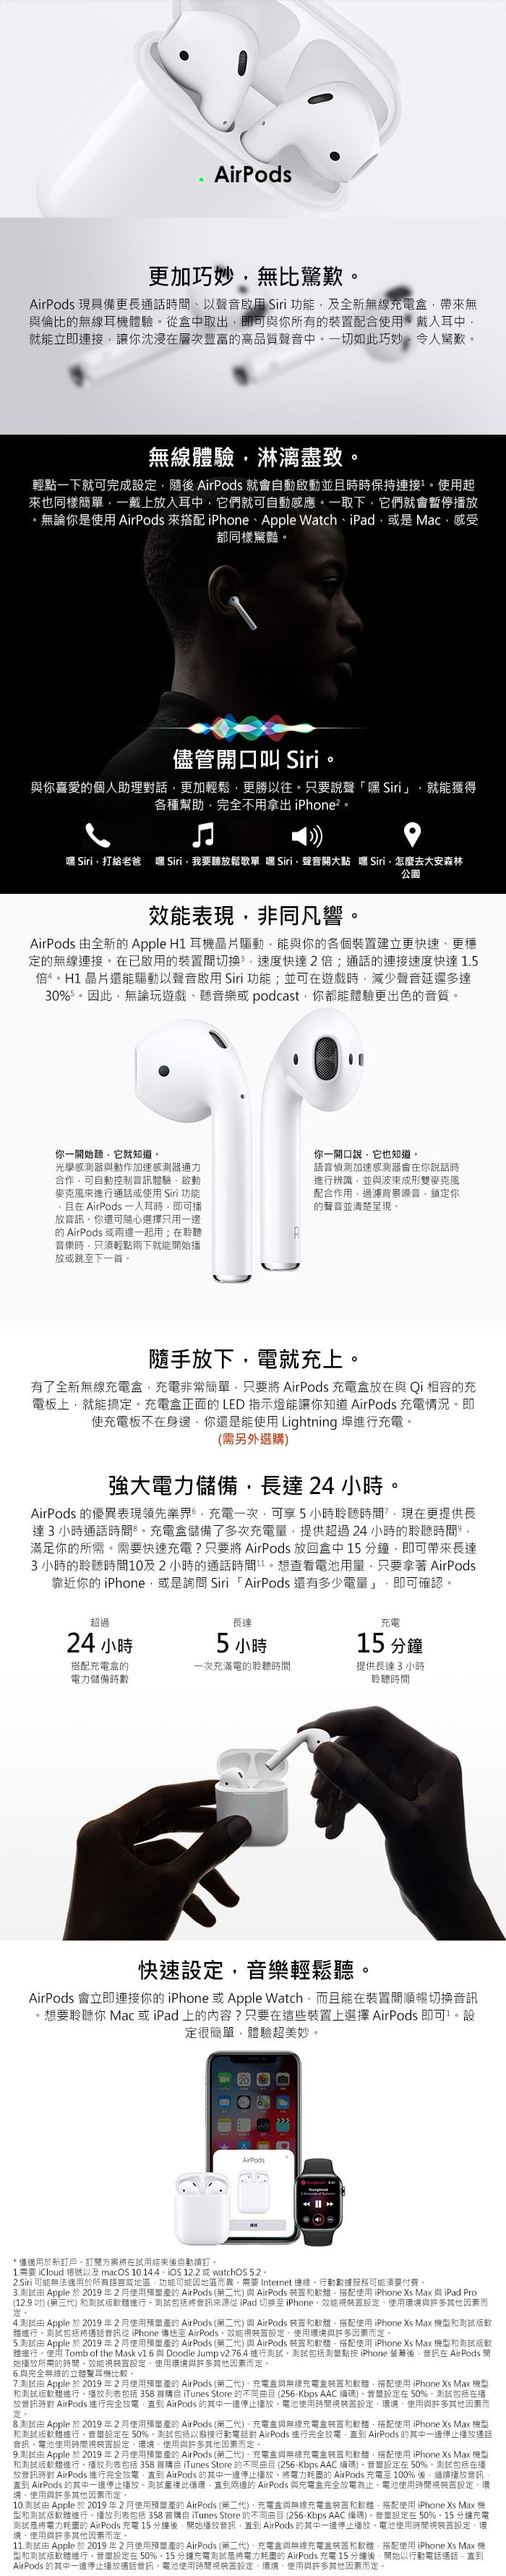 Apple.AirPods.MRXJ2TA/A